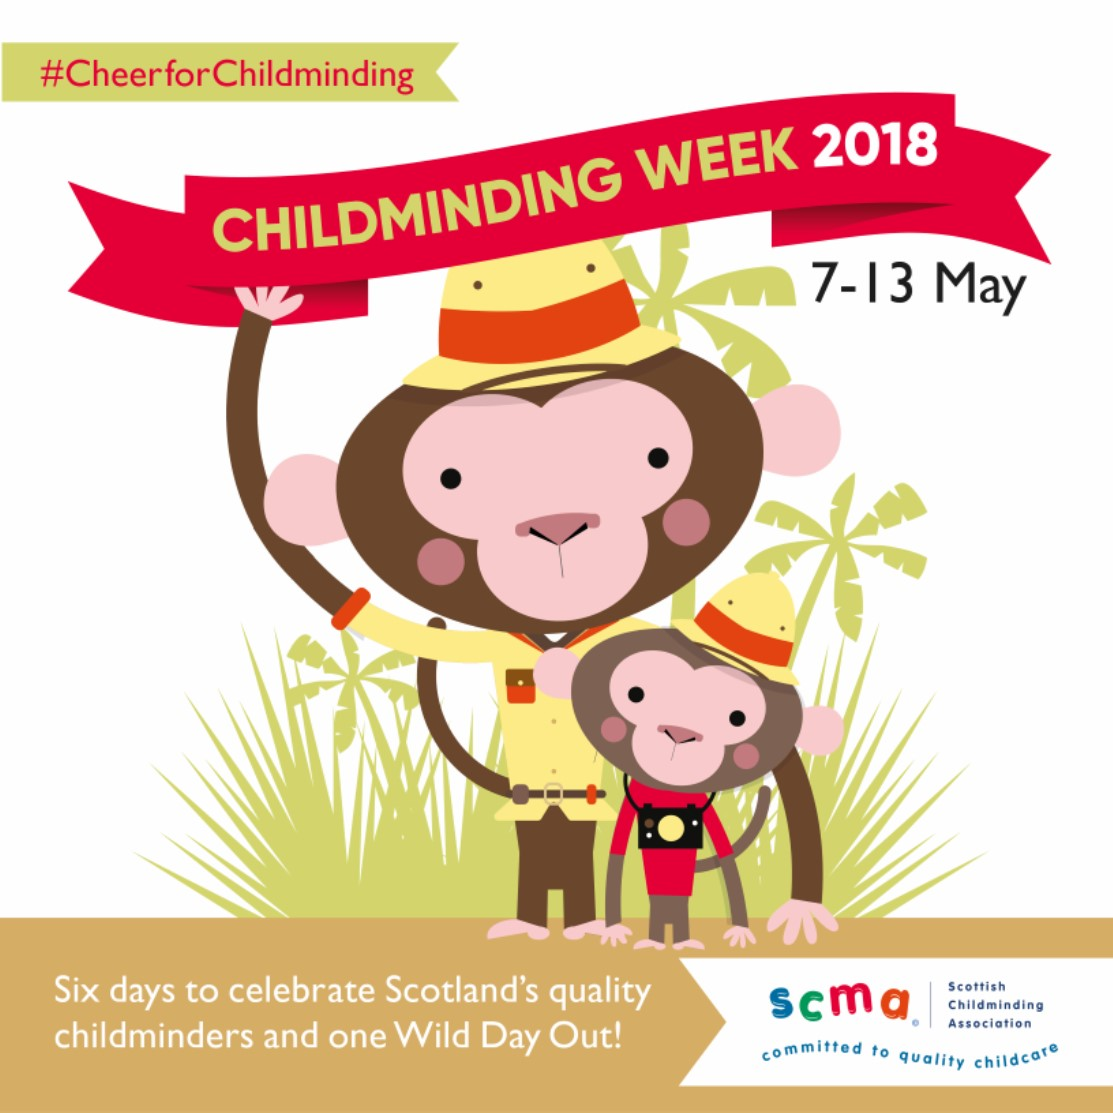 Big success for Childminding Week 2018